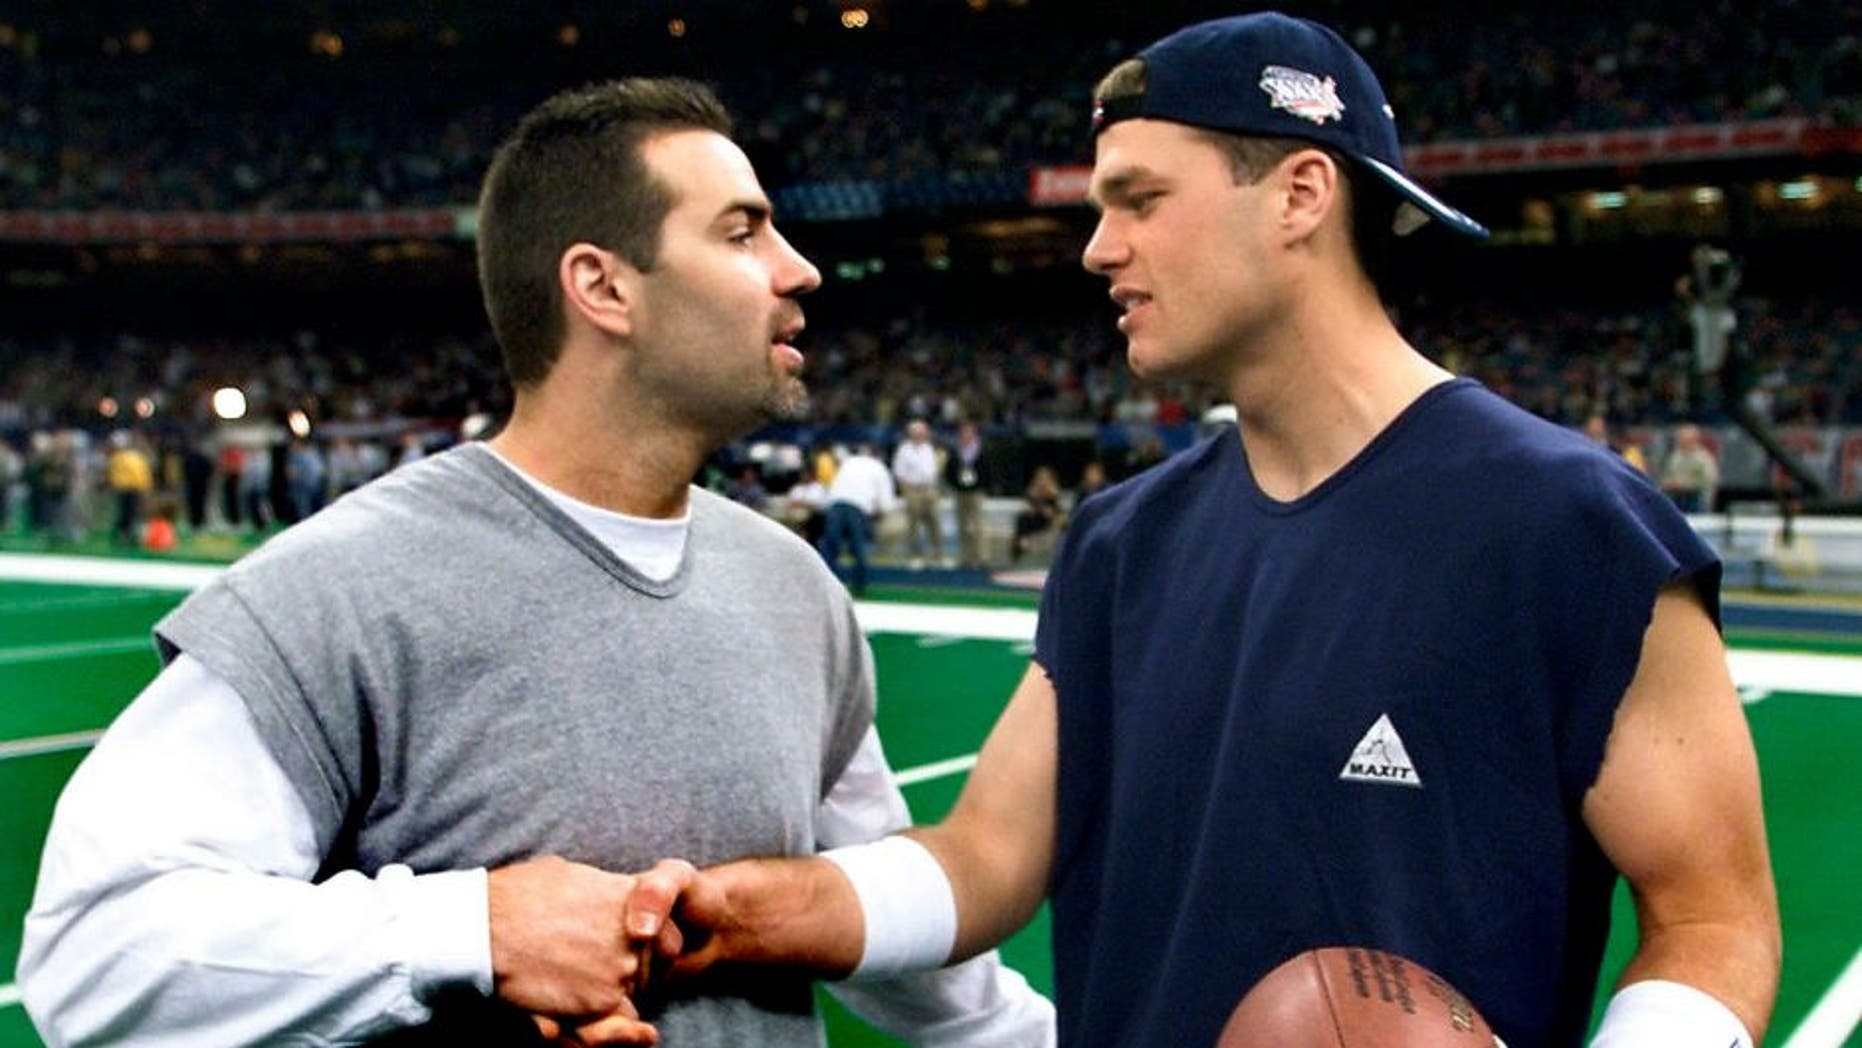 NEW ORLEANS, UNITED STATES: New England Patriots quarterback Tom Brady (R) chats with St. Louis Rams quarterback Kurt Warner (L) 03 February, 2002 at the Louisiana Superdome before Super Bowl XXXVI in New Orleans, Louisiana. The St. Louis Rams and the New England Patriots are playing for the NFL championship. AFP PHOTO/Jeff HAYNES. (Photo credit should read JEFF HAYNES/AFP/Getty Images)